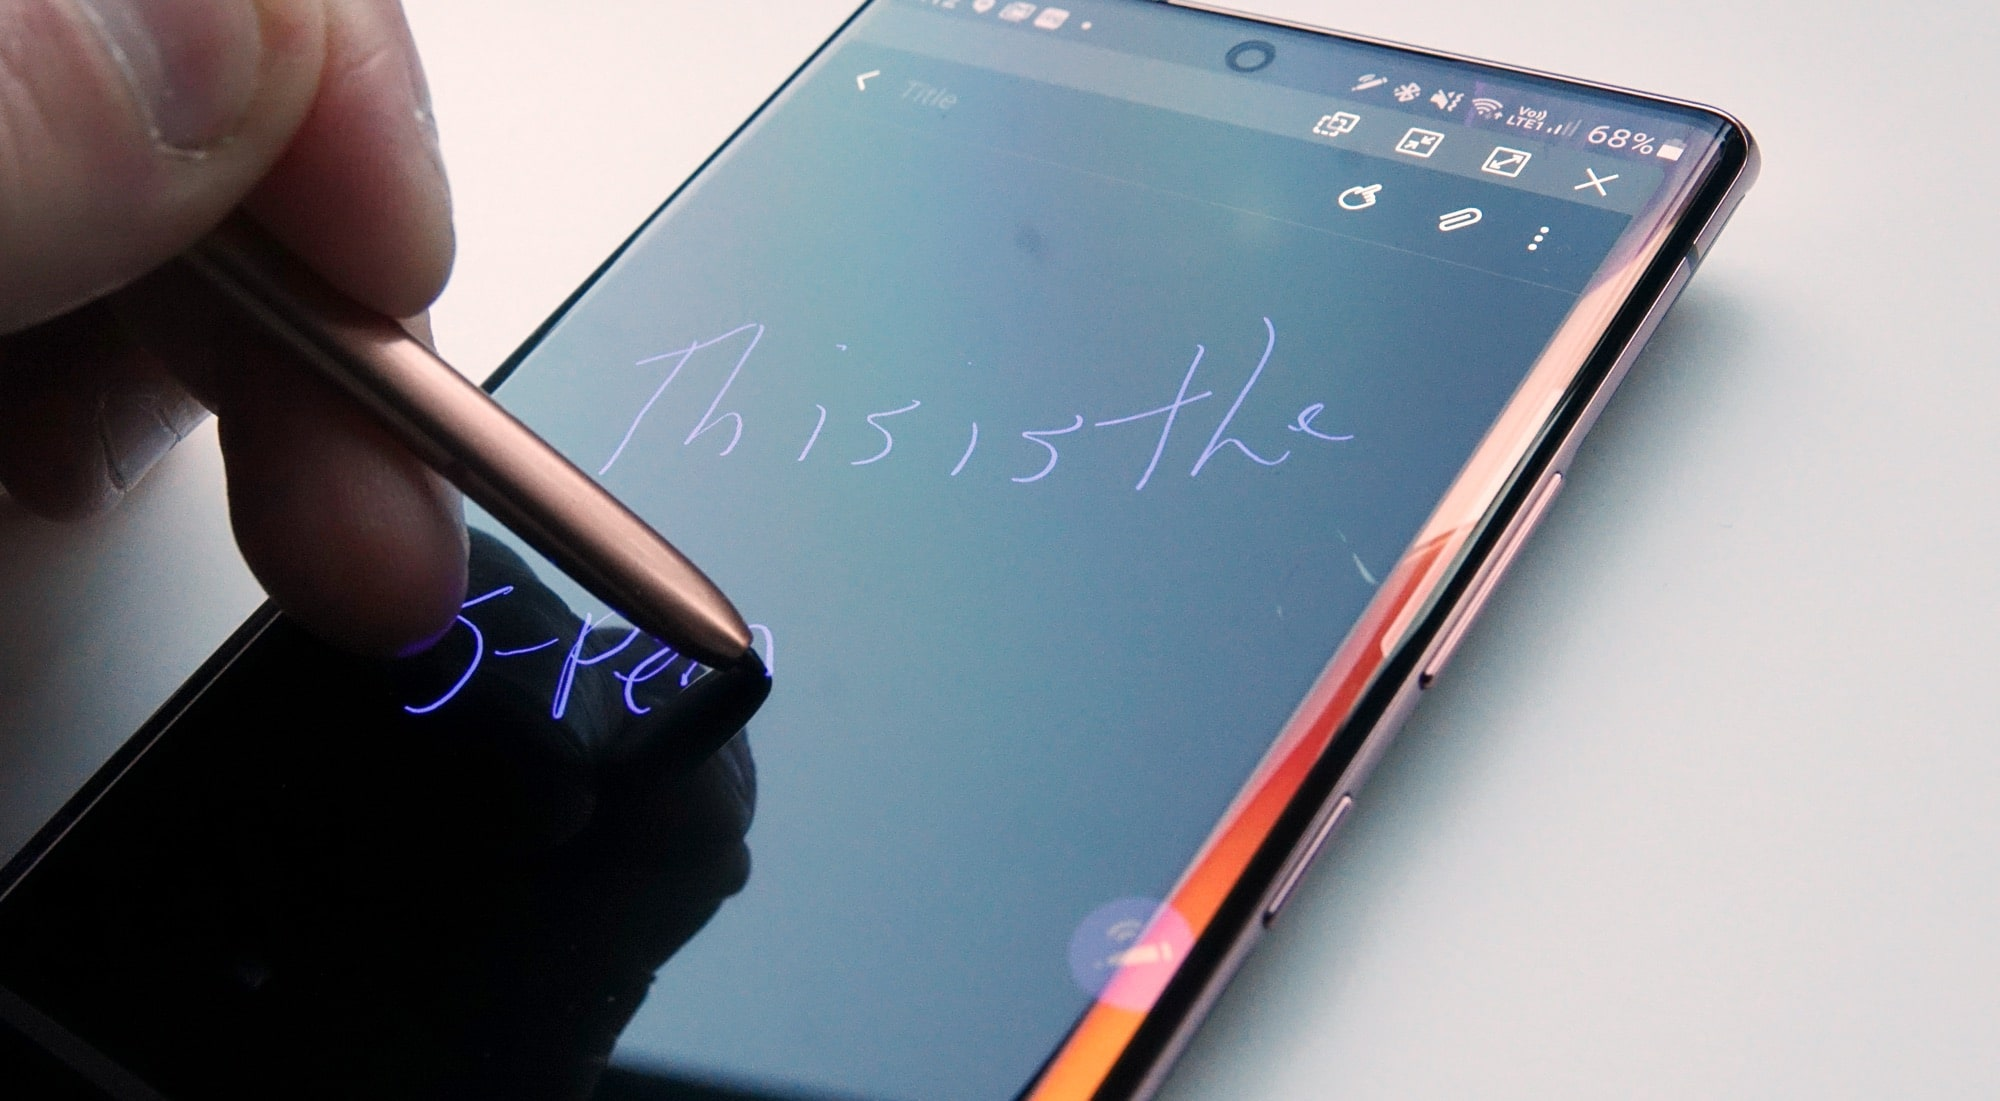 Writing on the Samsung Galaxy Note 20 Ultra